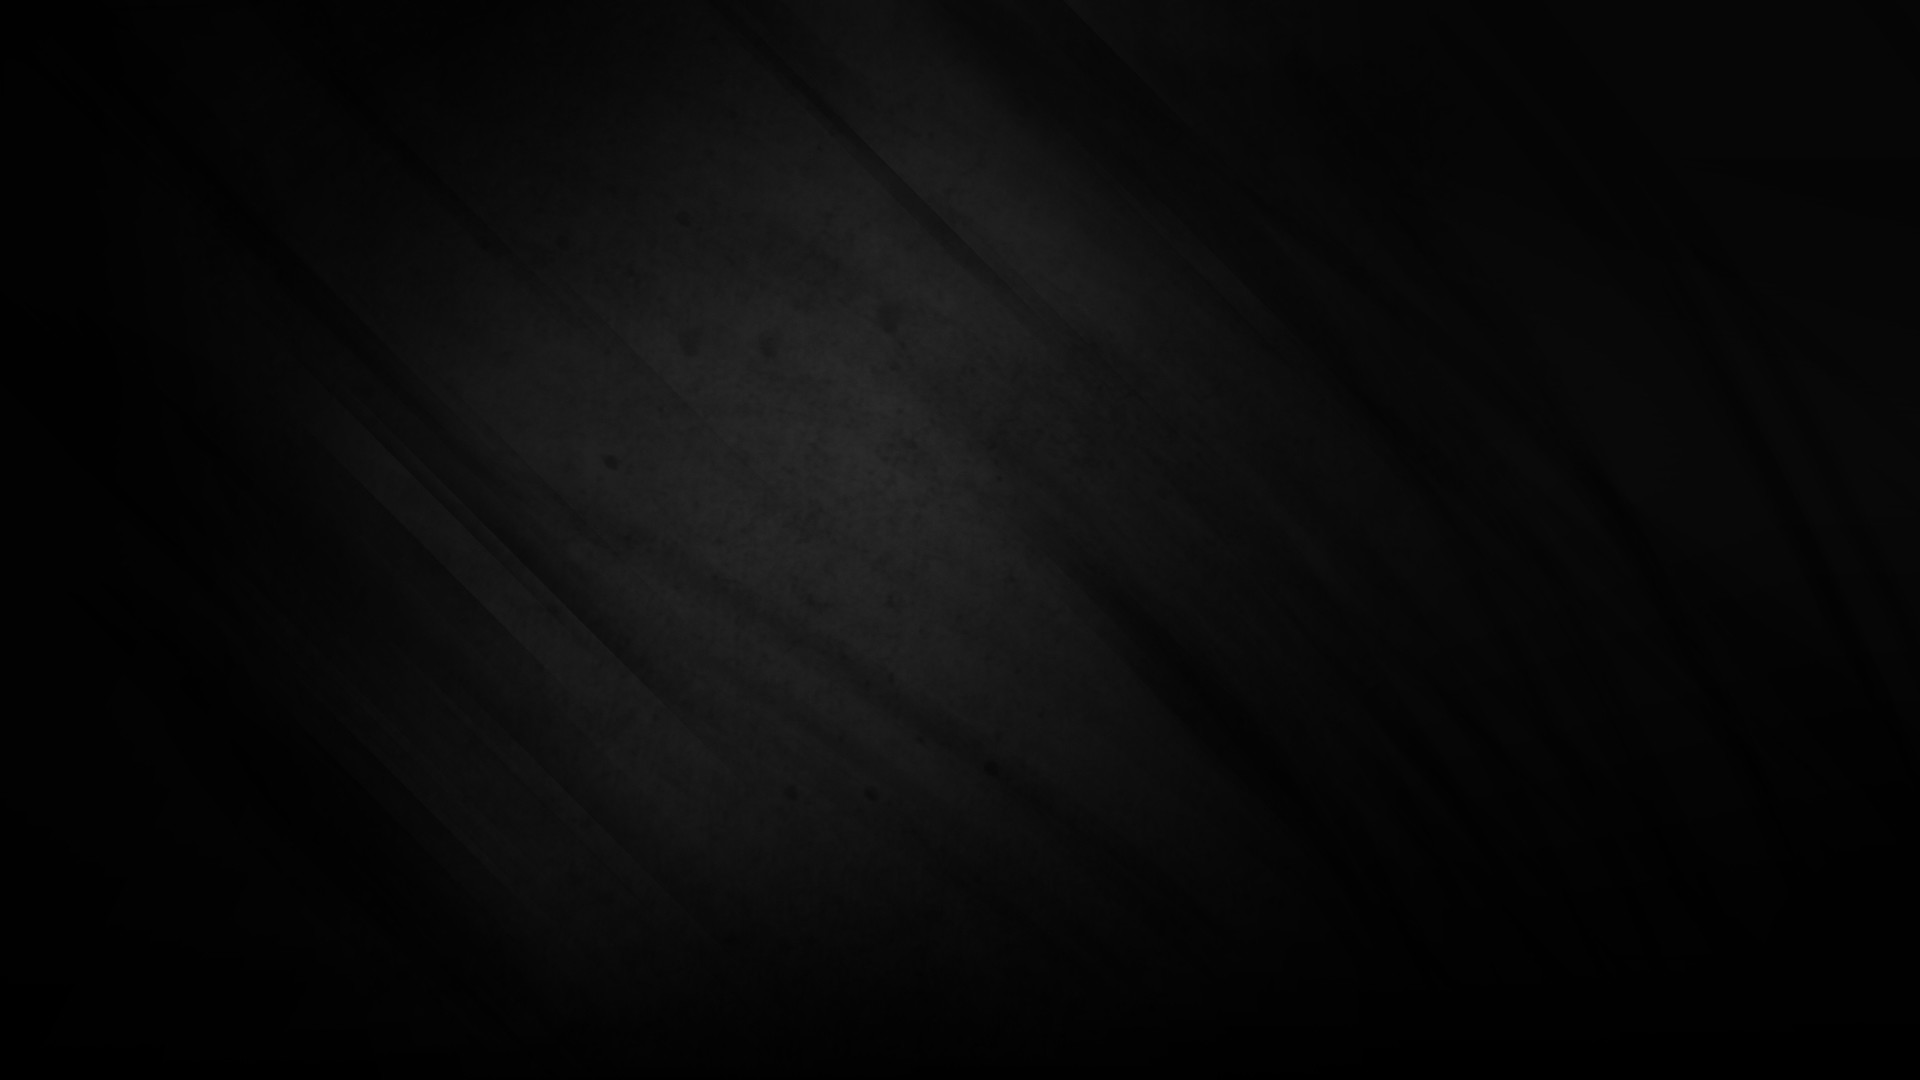 Res: 1920x1080, tags: black blank page wallpaper, black blank wallpaper, black blank  wallpaper download, blank black wallpaper iphone